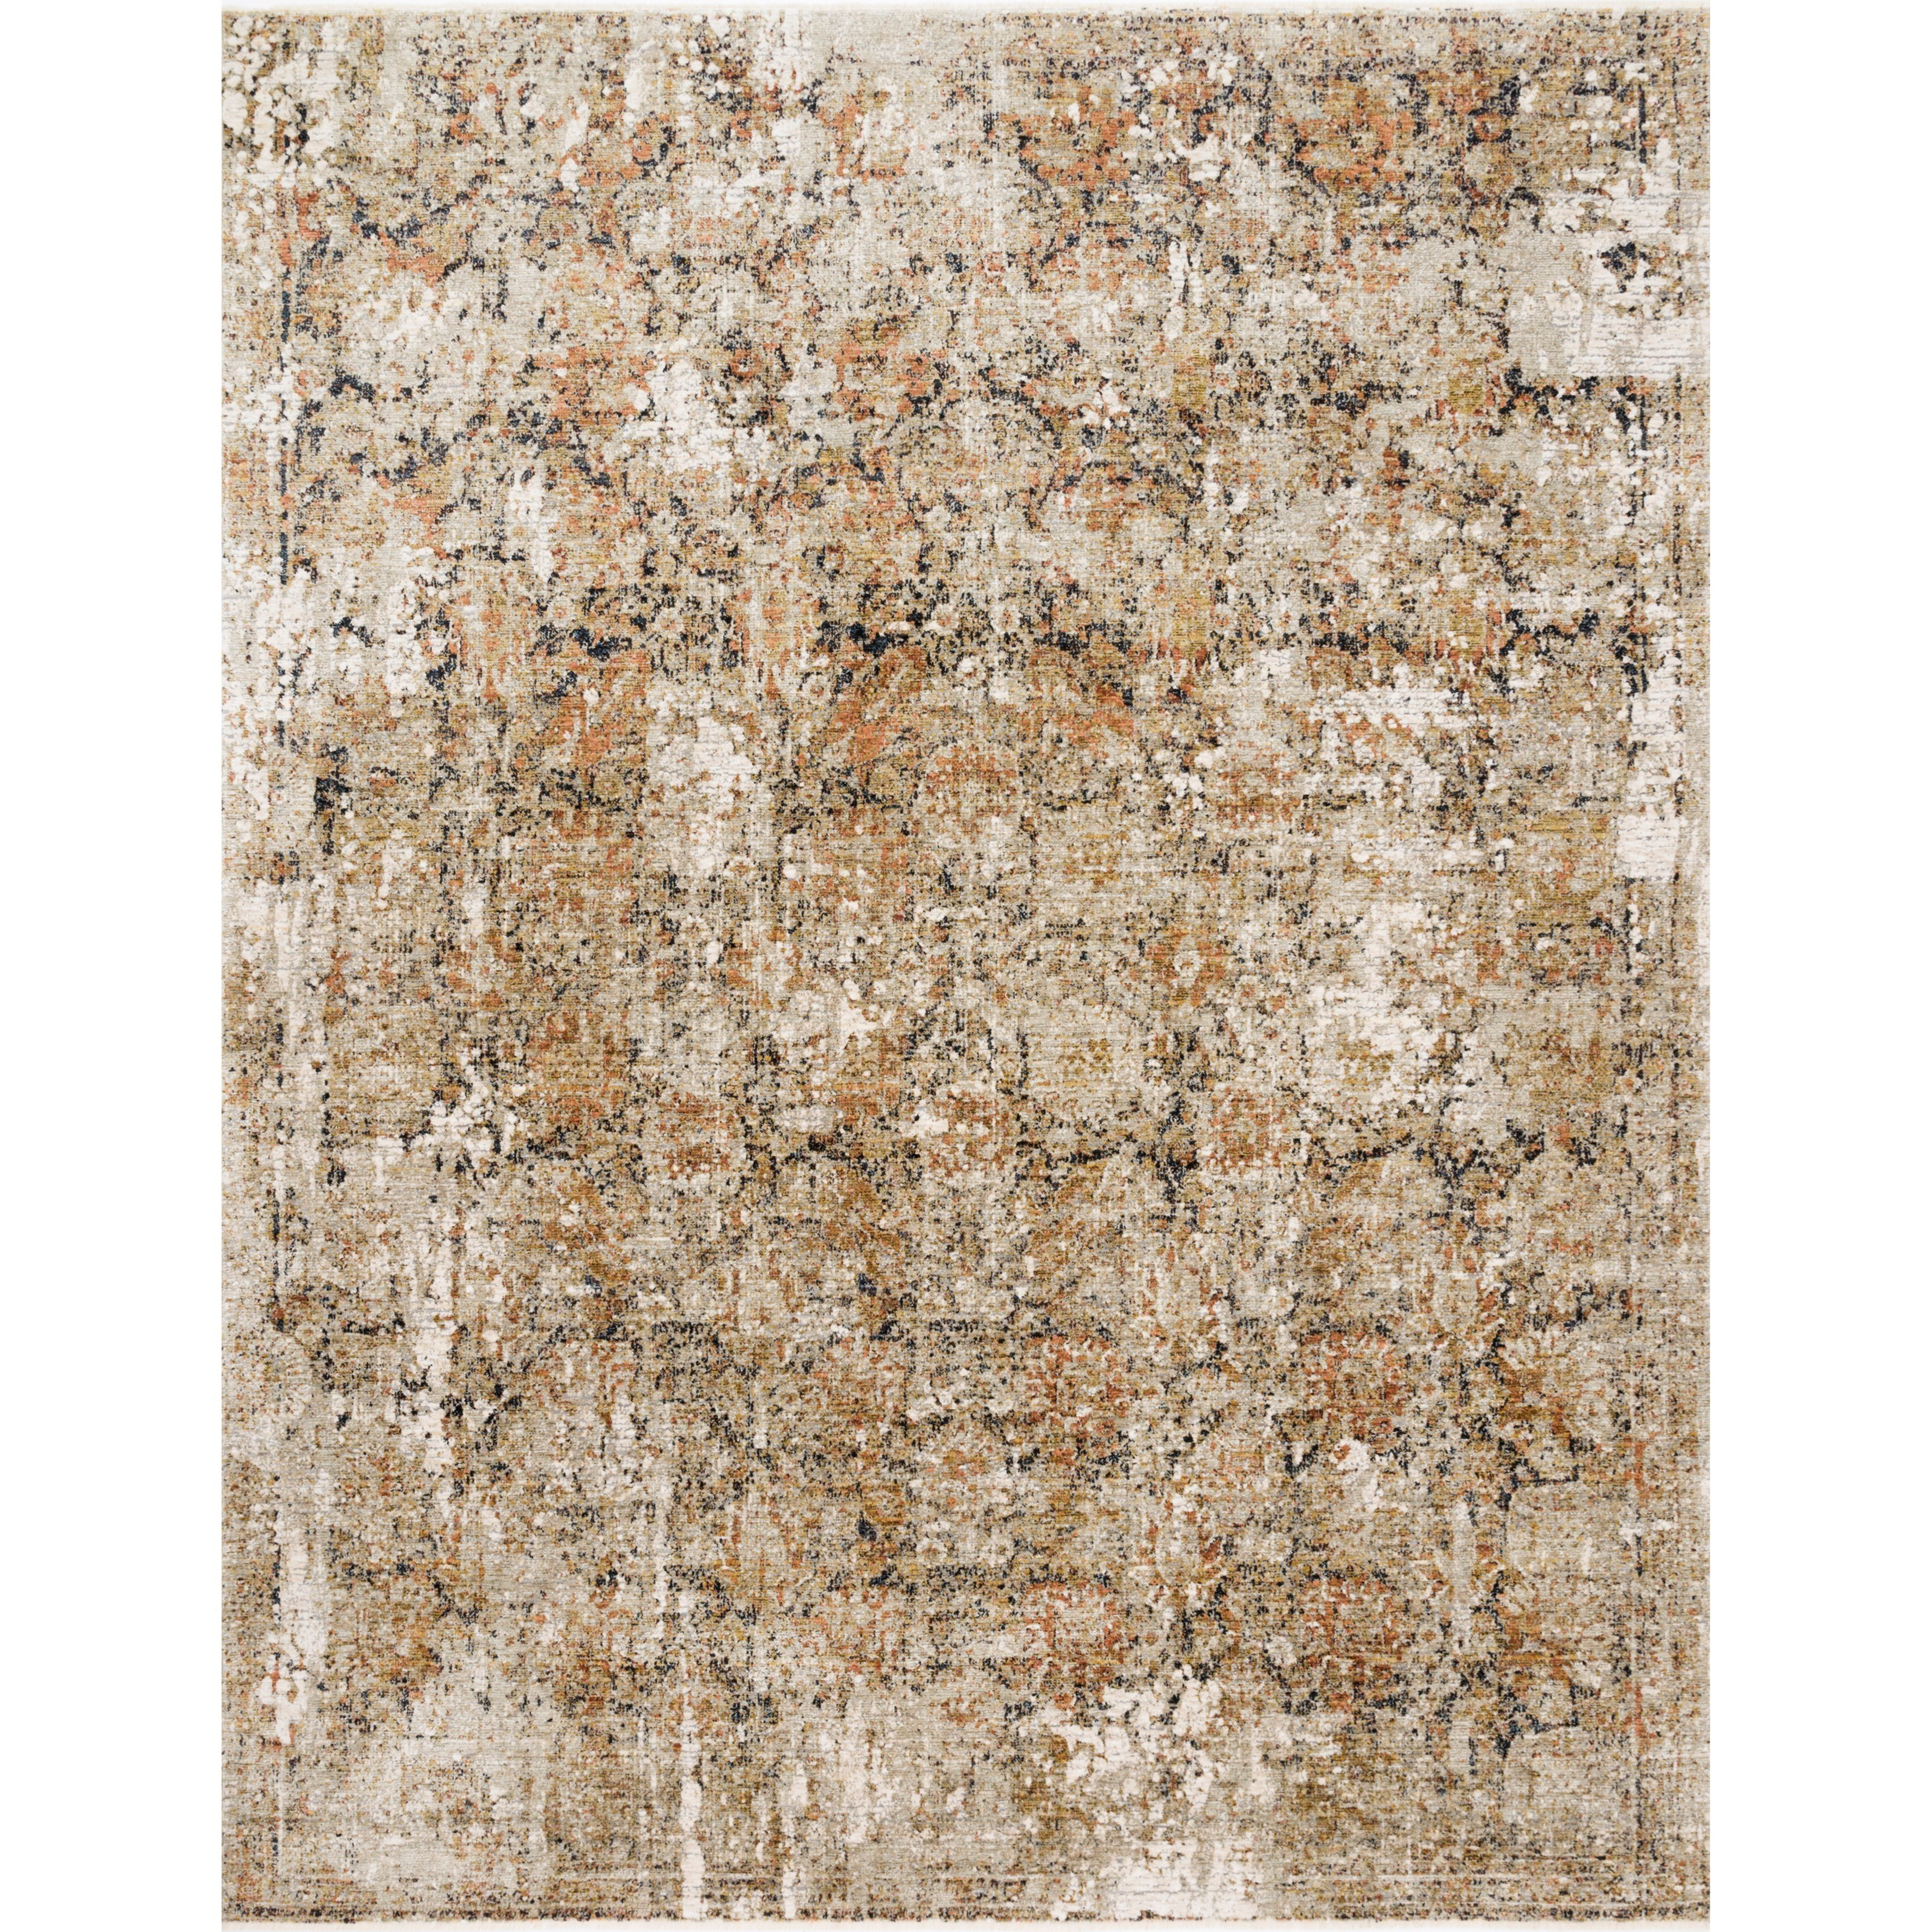 """Theia 7'10"""" x 7'10"""" Round Taupe / Gold Rug by Loloi Rugs at Virginia Furniture Market"""